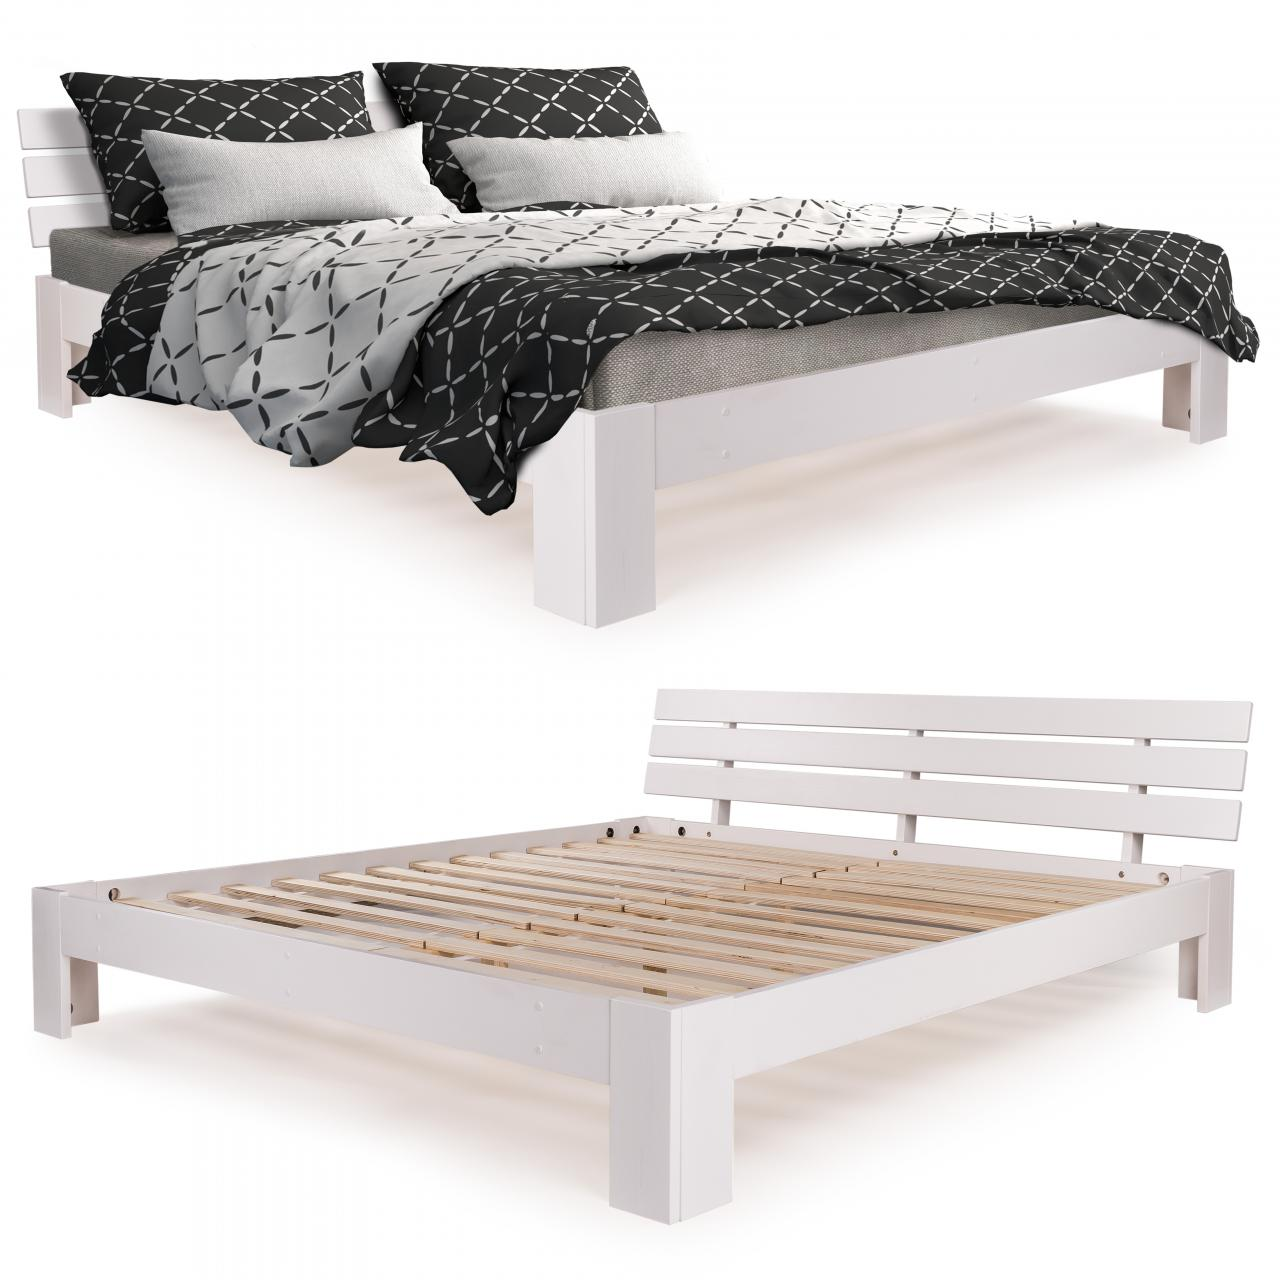 homelux holzbett kiefer doppelbett bettgestell bettrahmen. Black Bedroom Furniture Sets. Home Design Ideas